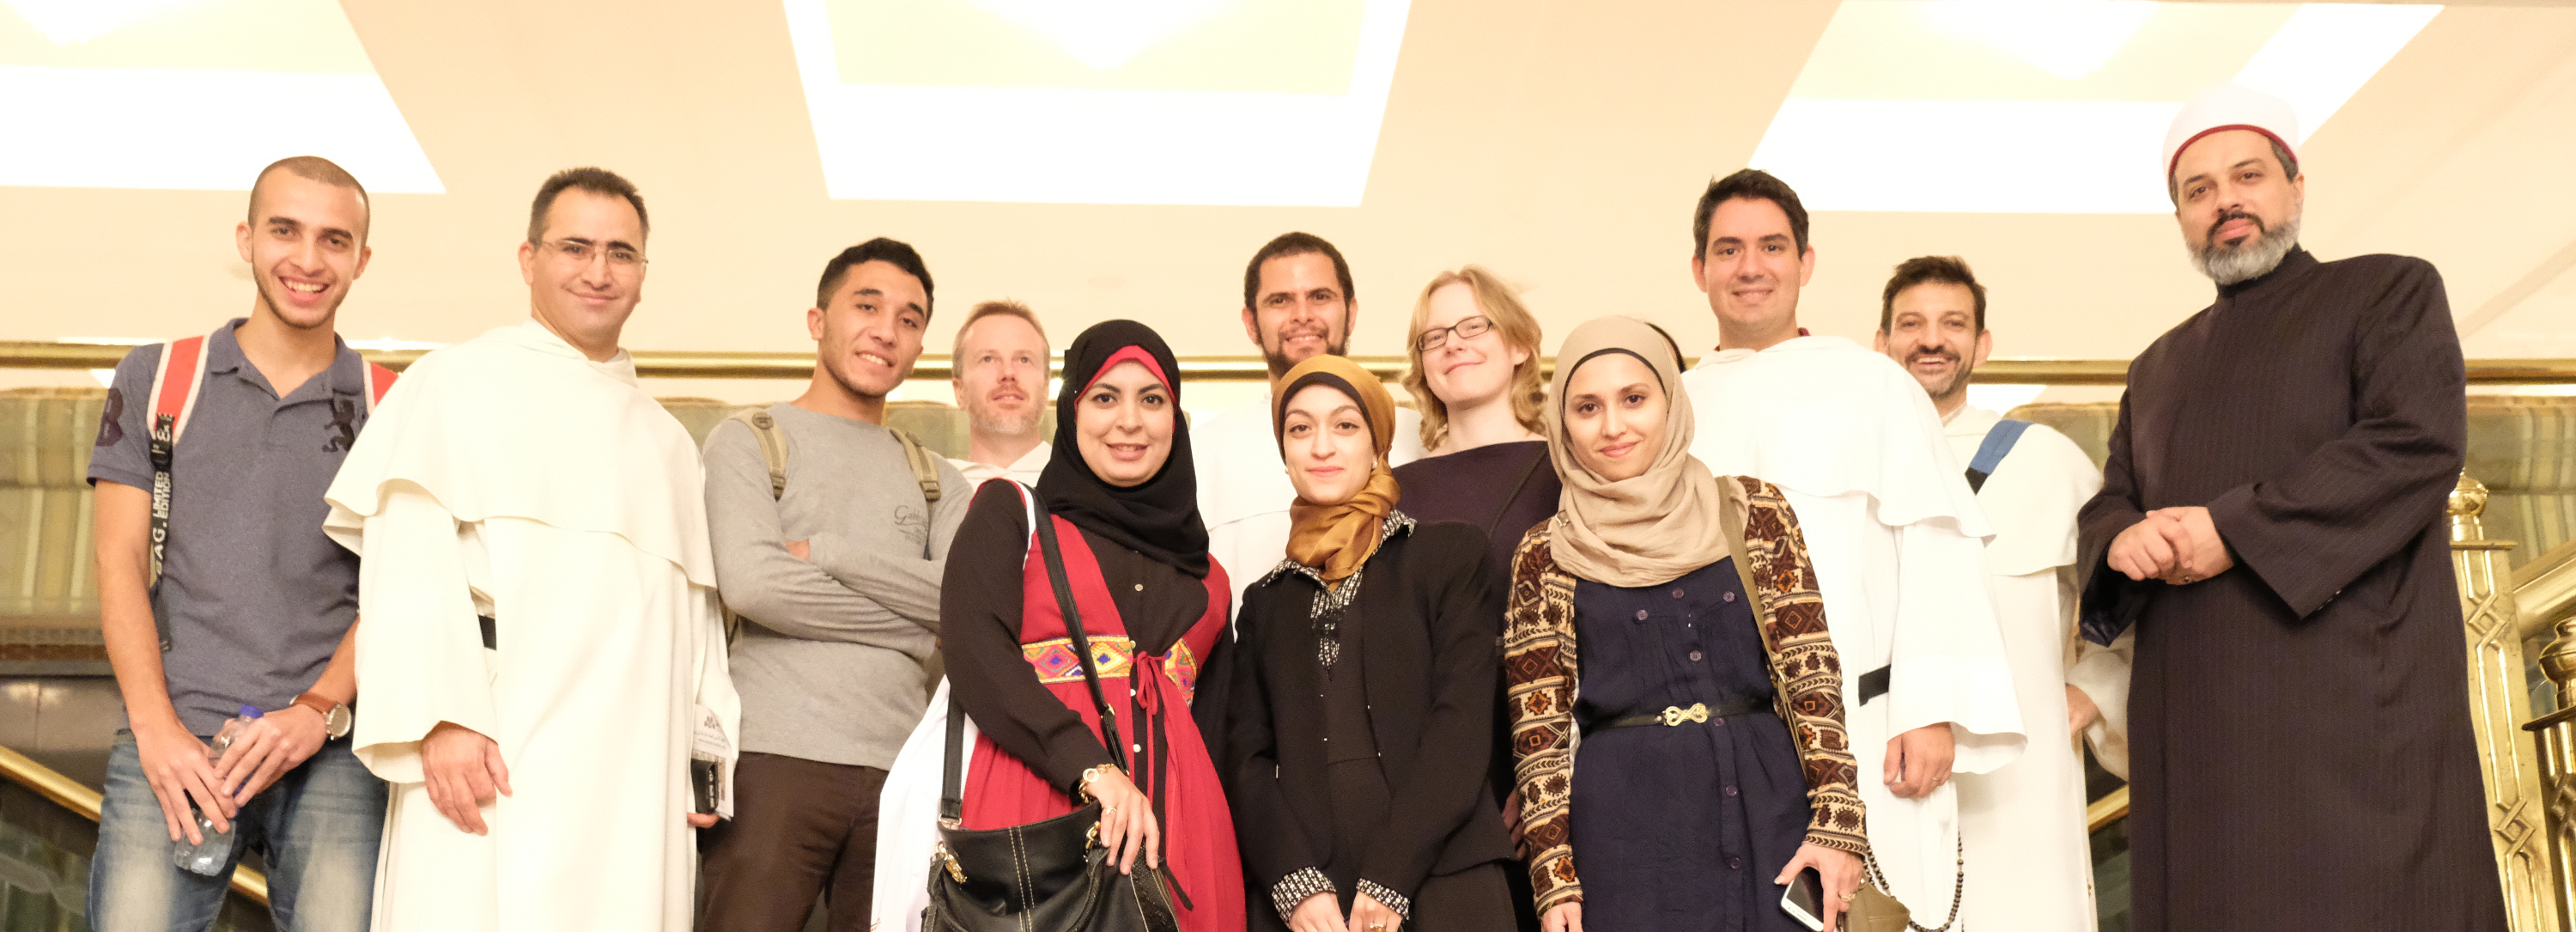 http://www.ideo-cairo.org/wp-content/uploads/2016/12/Dialogue.png